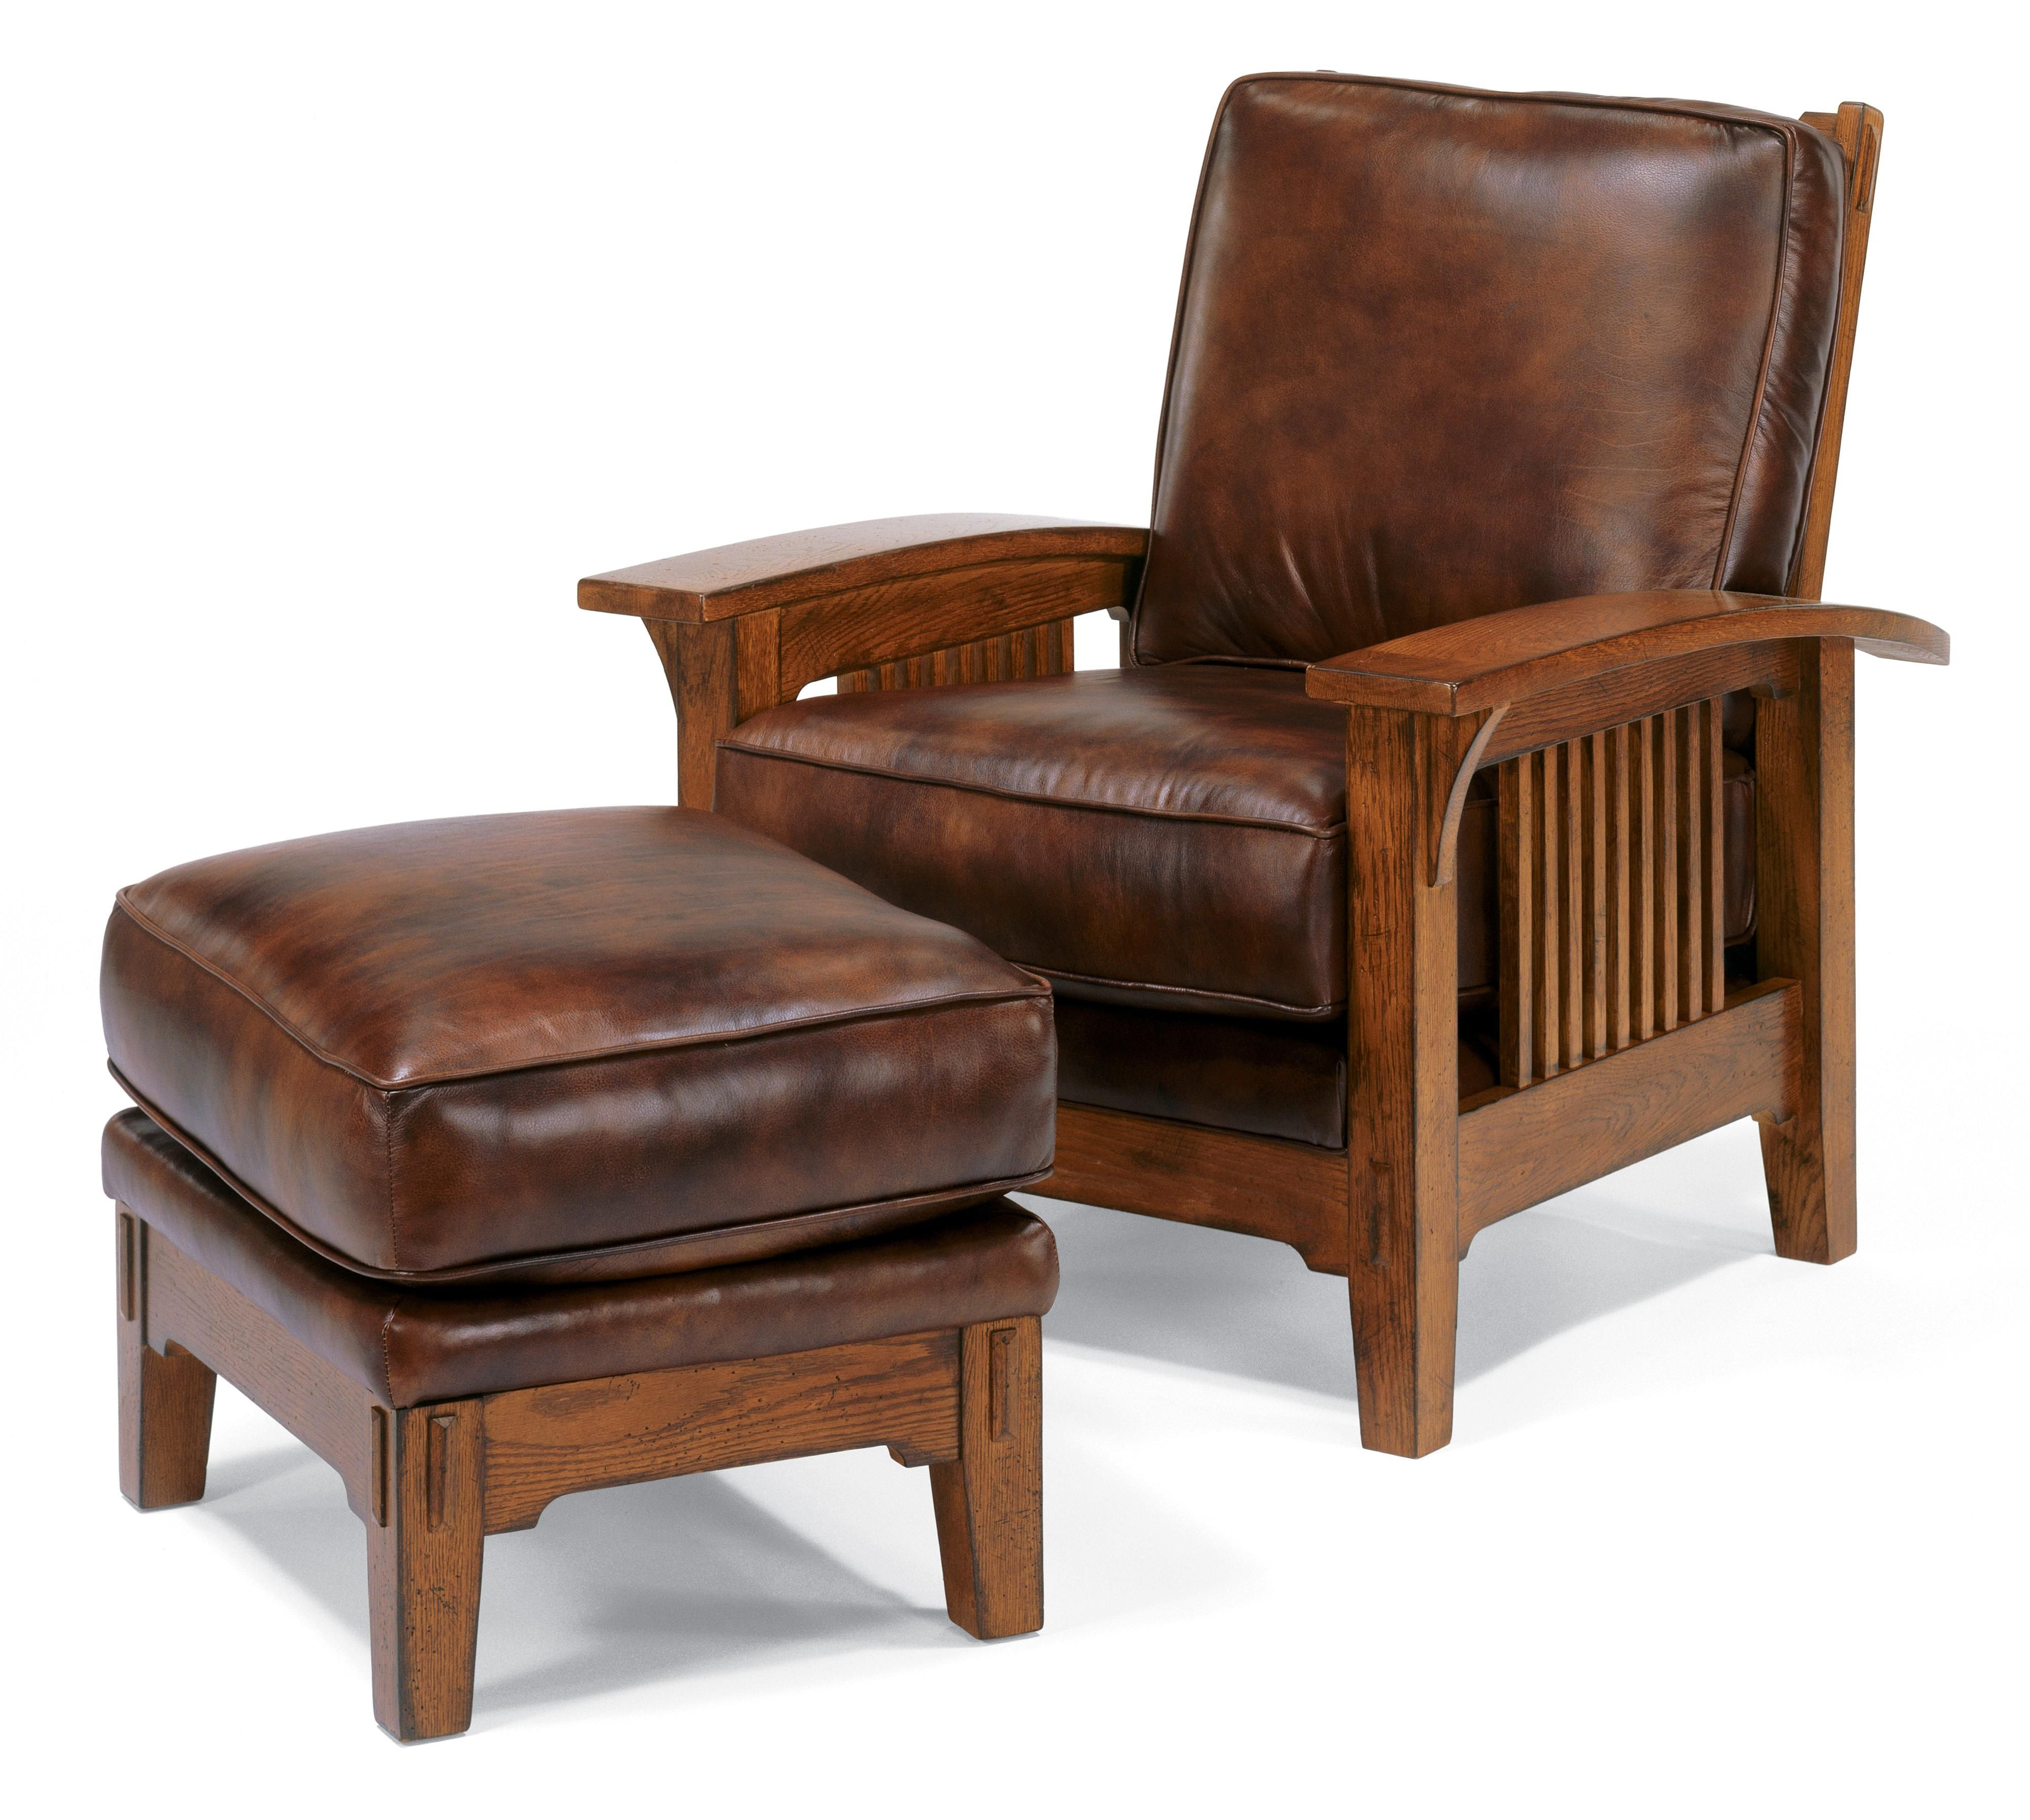 mission style furniture Google Search Leather chair